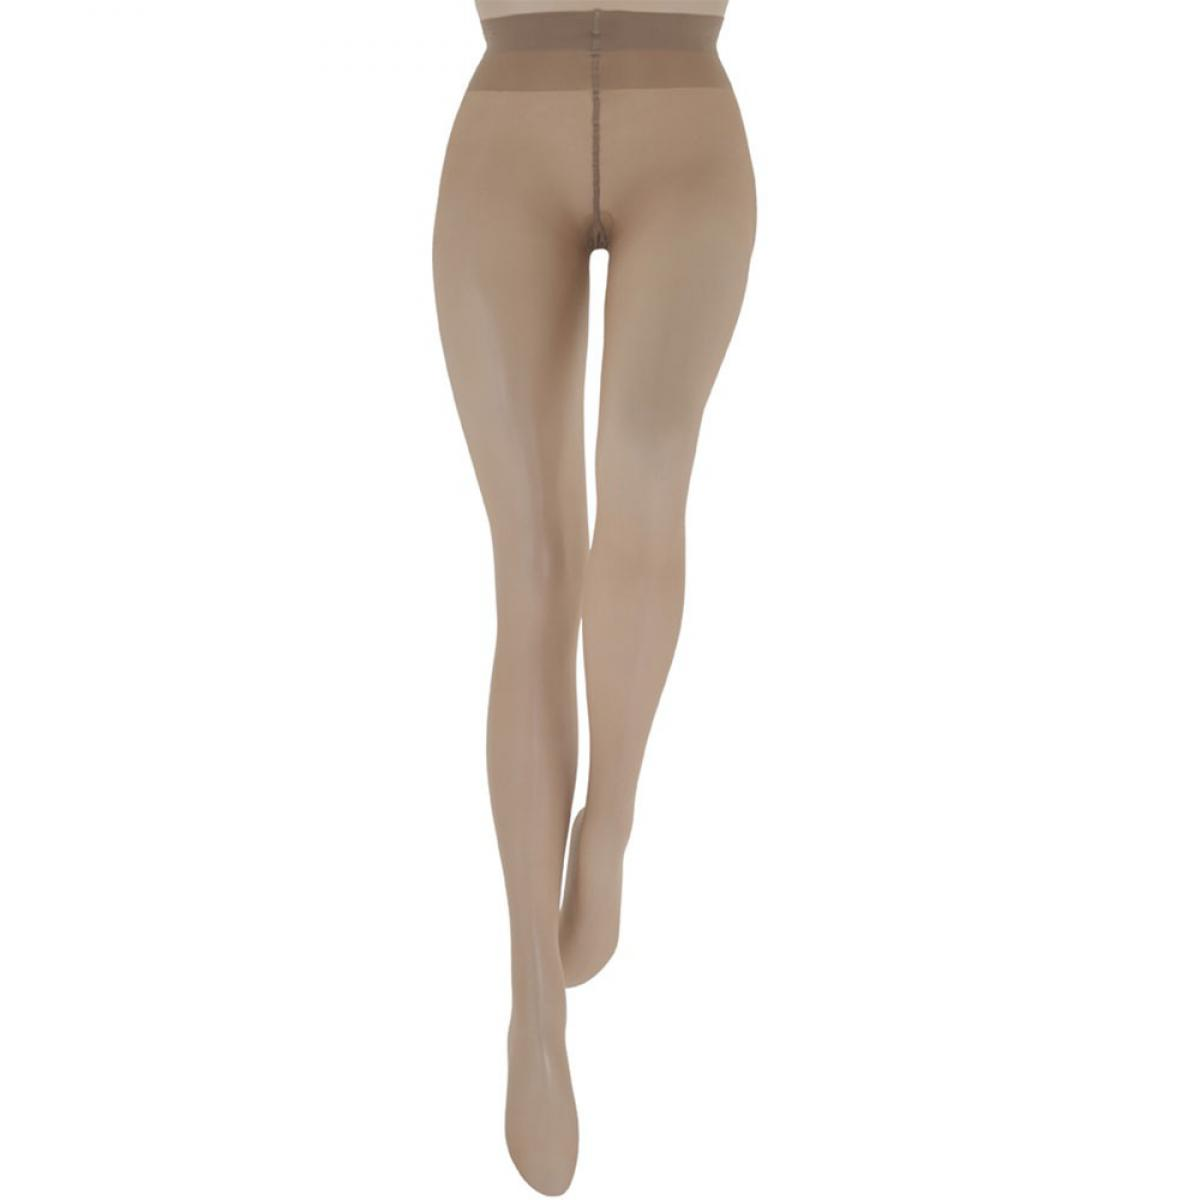 Collant voile 60D LE BOURGET Heritage nude